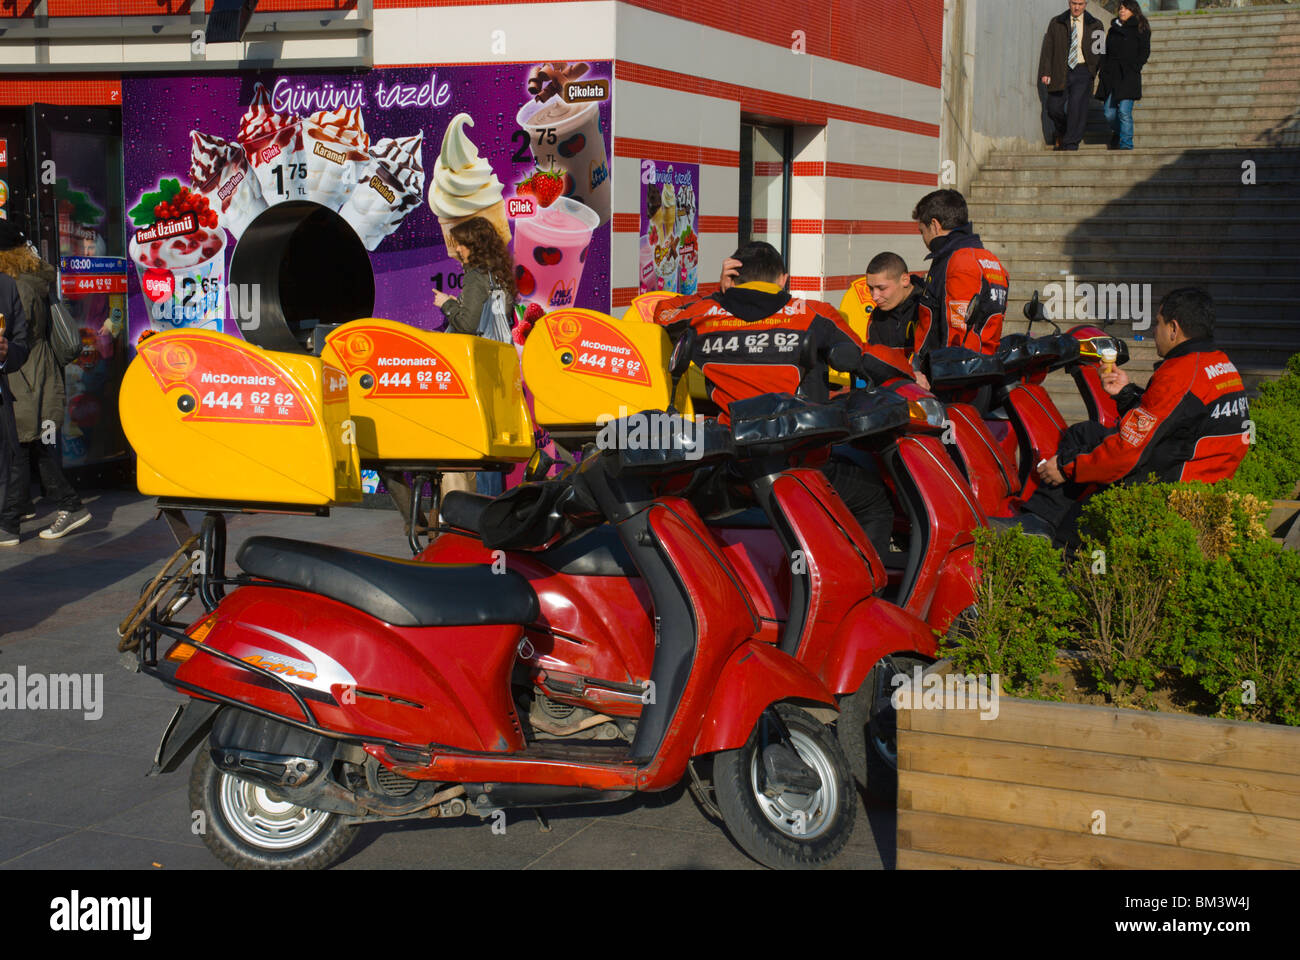 mcdonalds delivery dublin